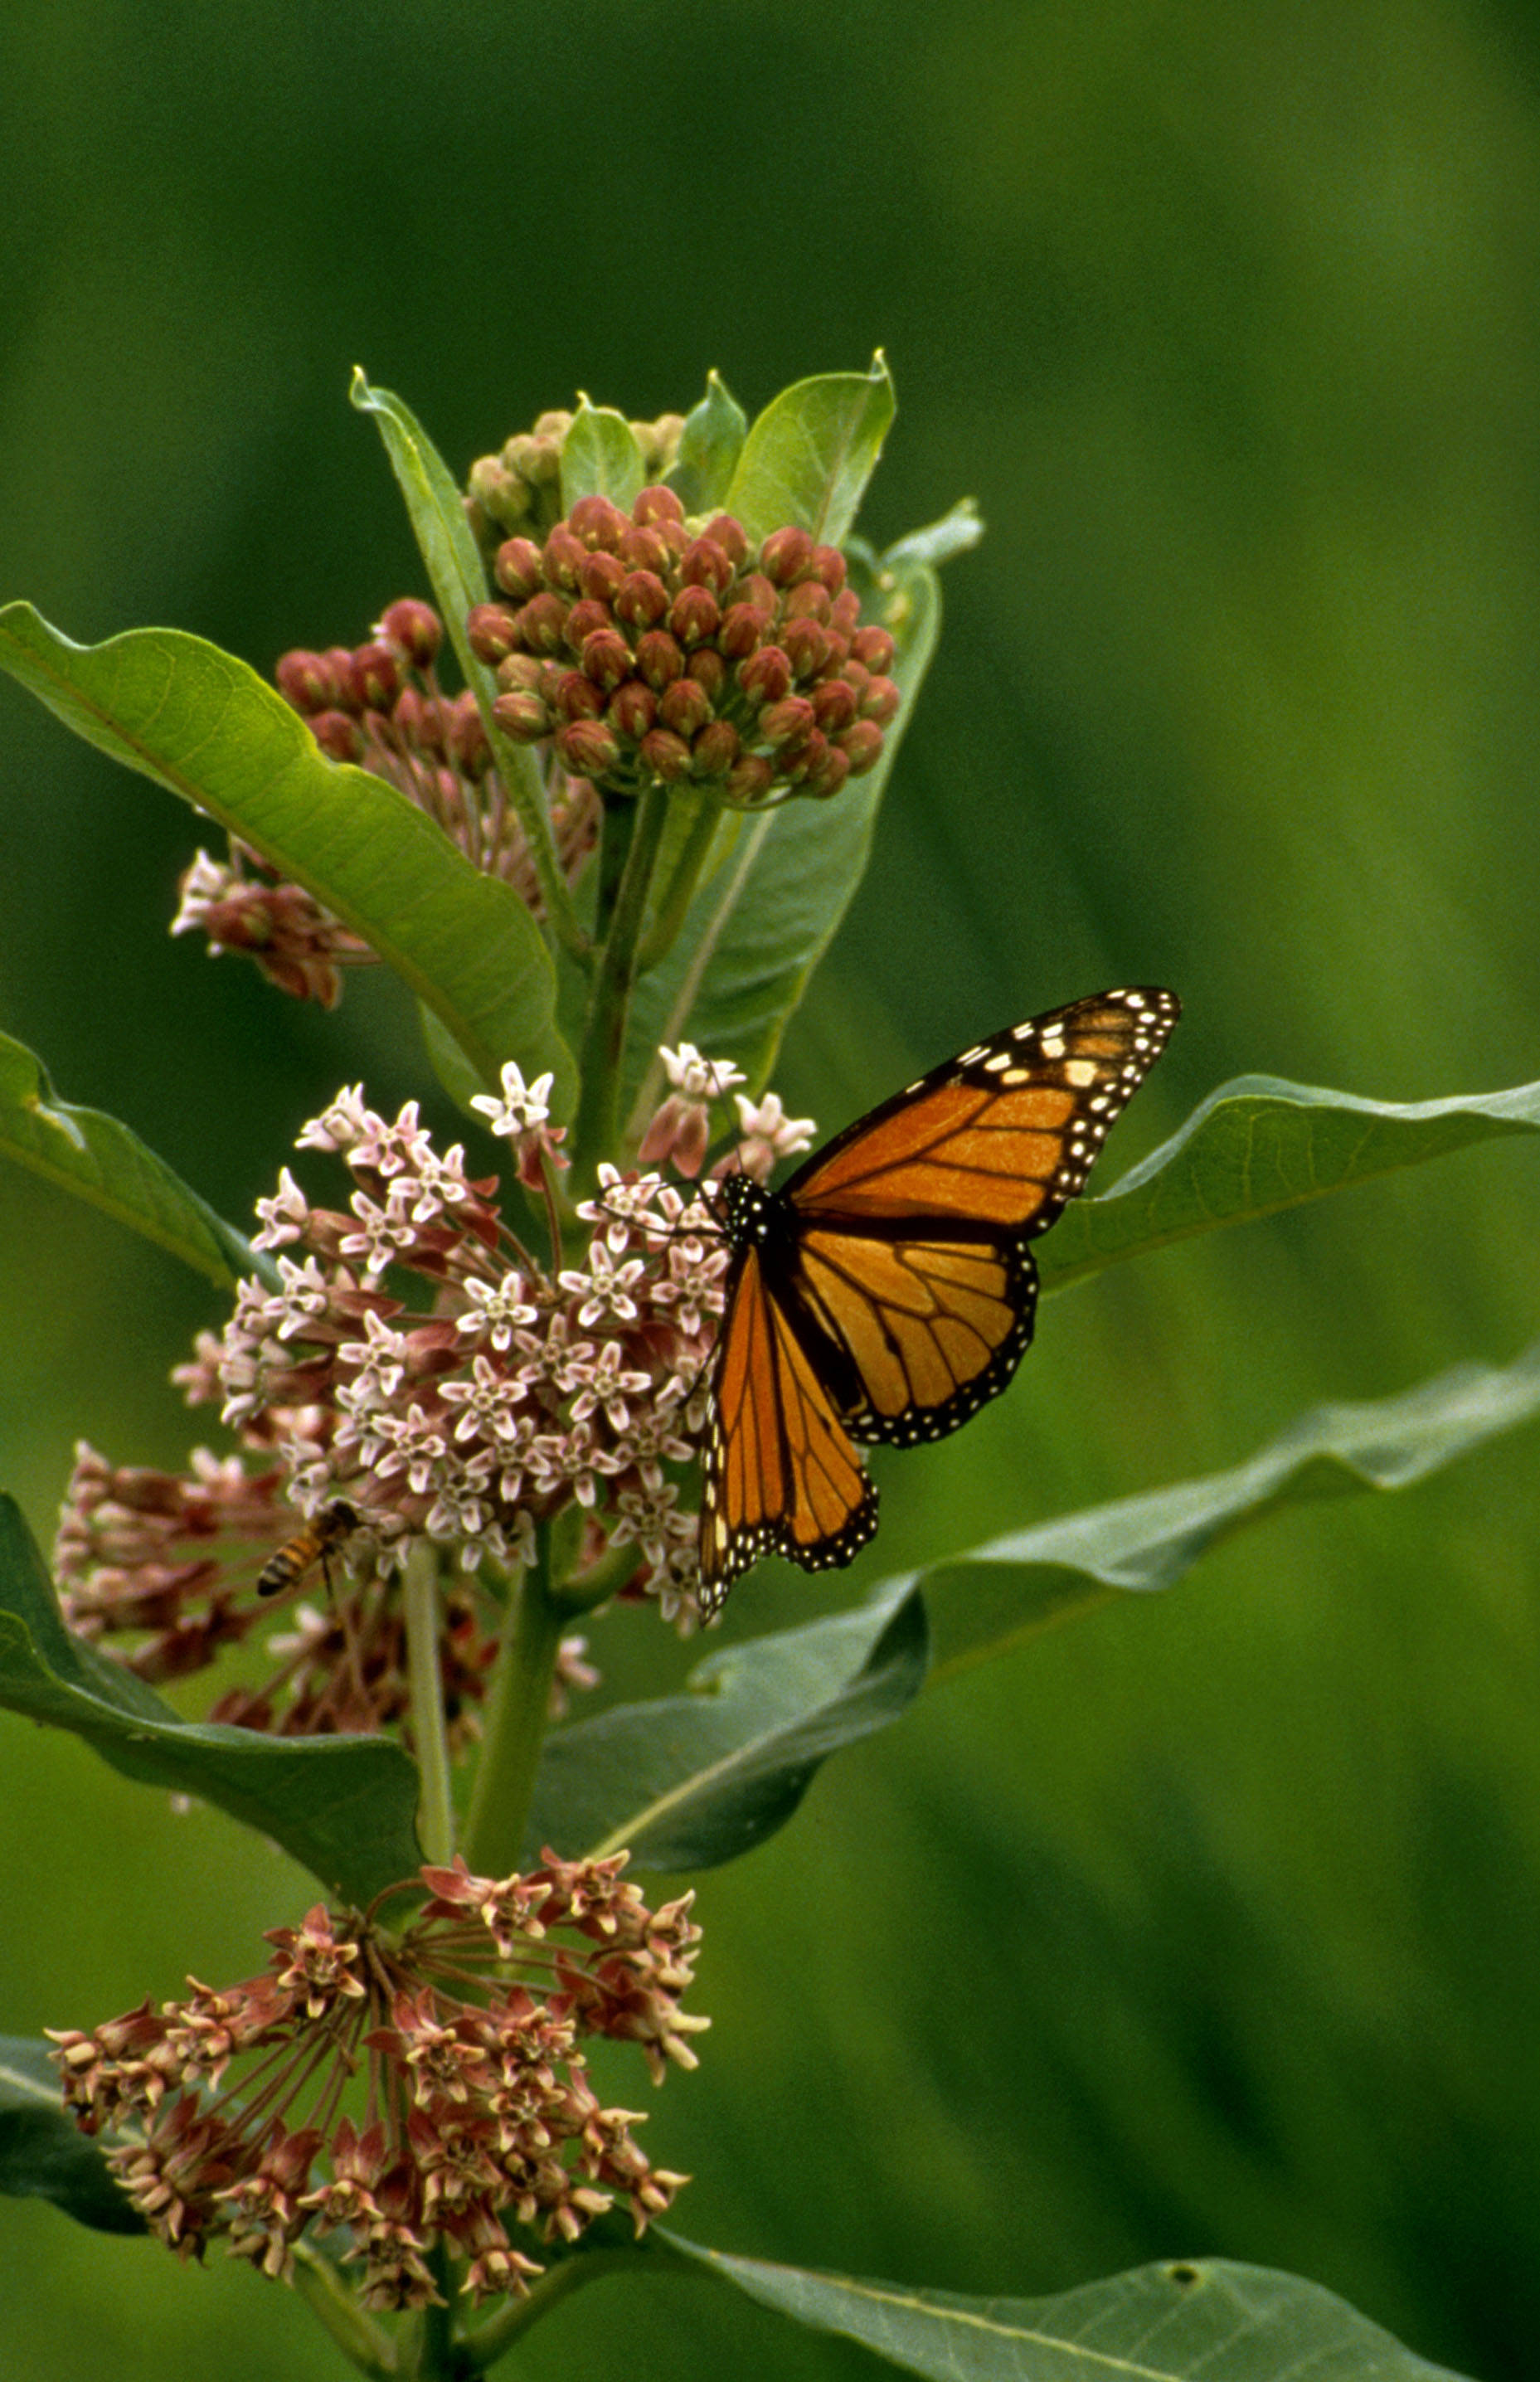 Monarch butterfly (U.S. Fish and Wildlife Service)